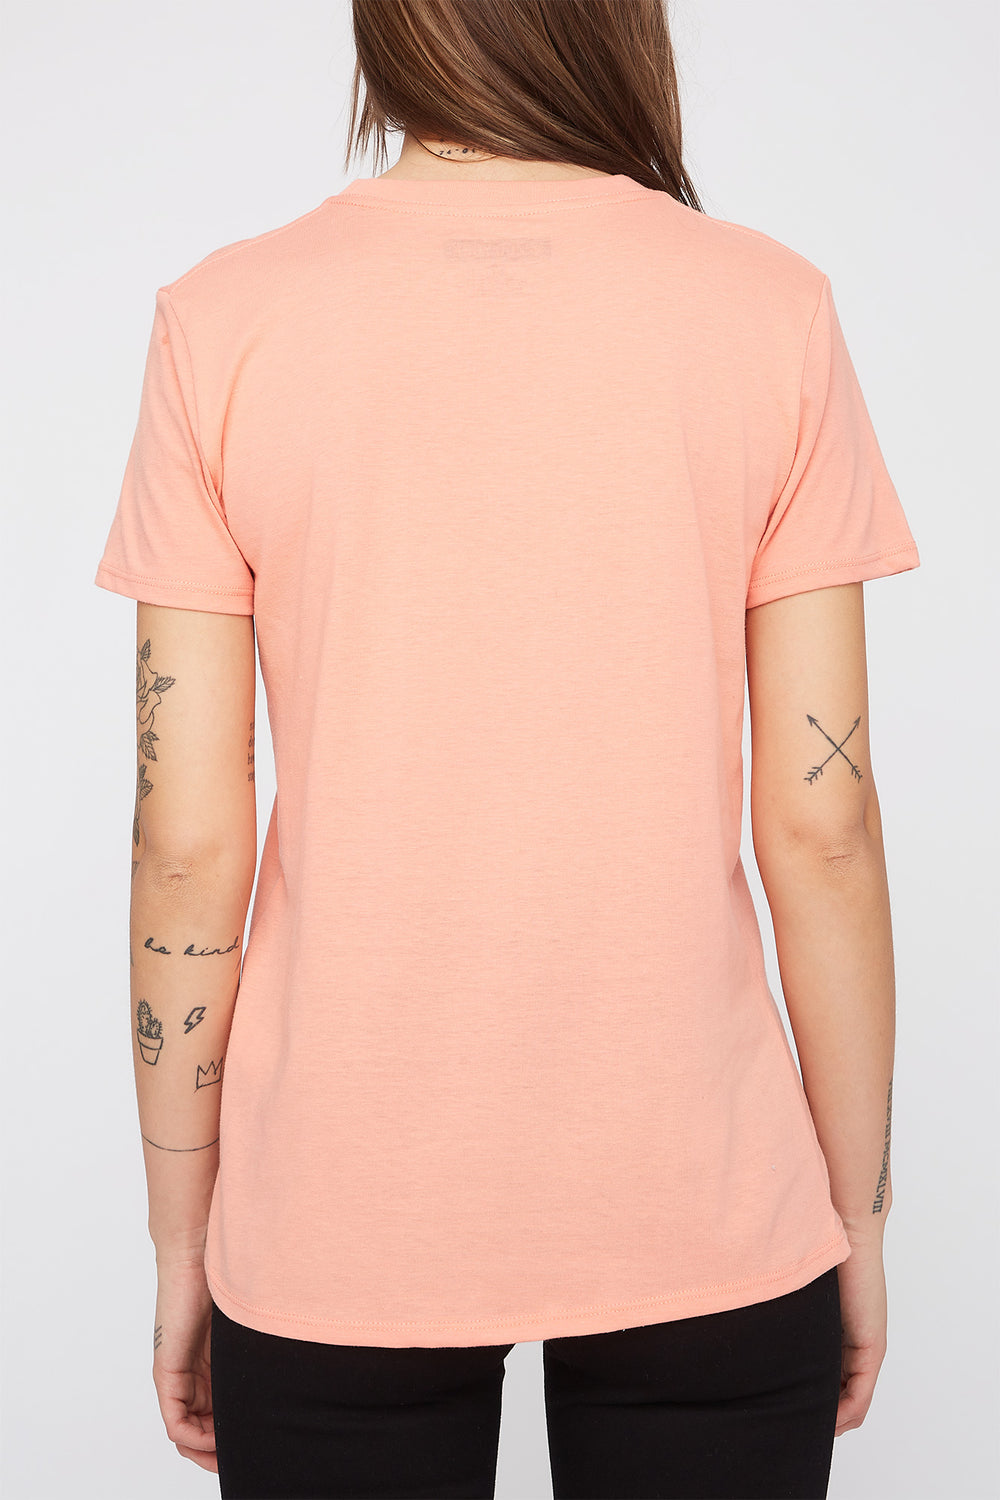 Zoo York Womens Pastel Box Logo T-Shirt Peach